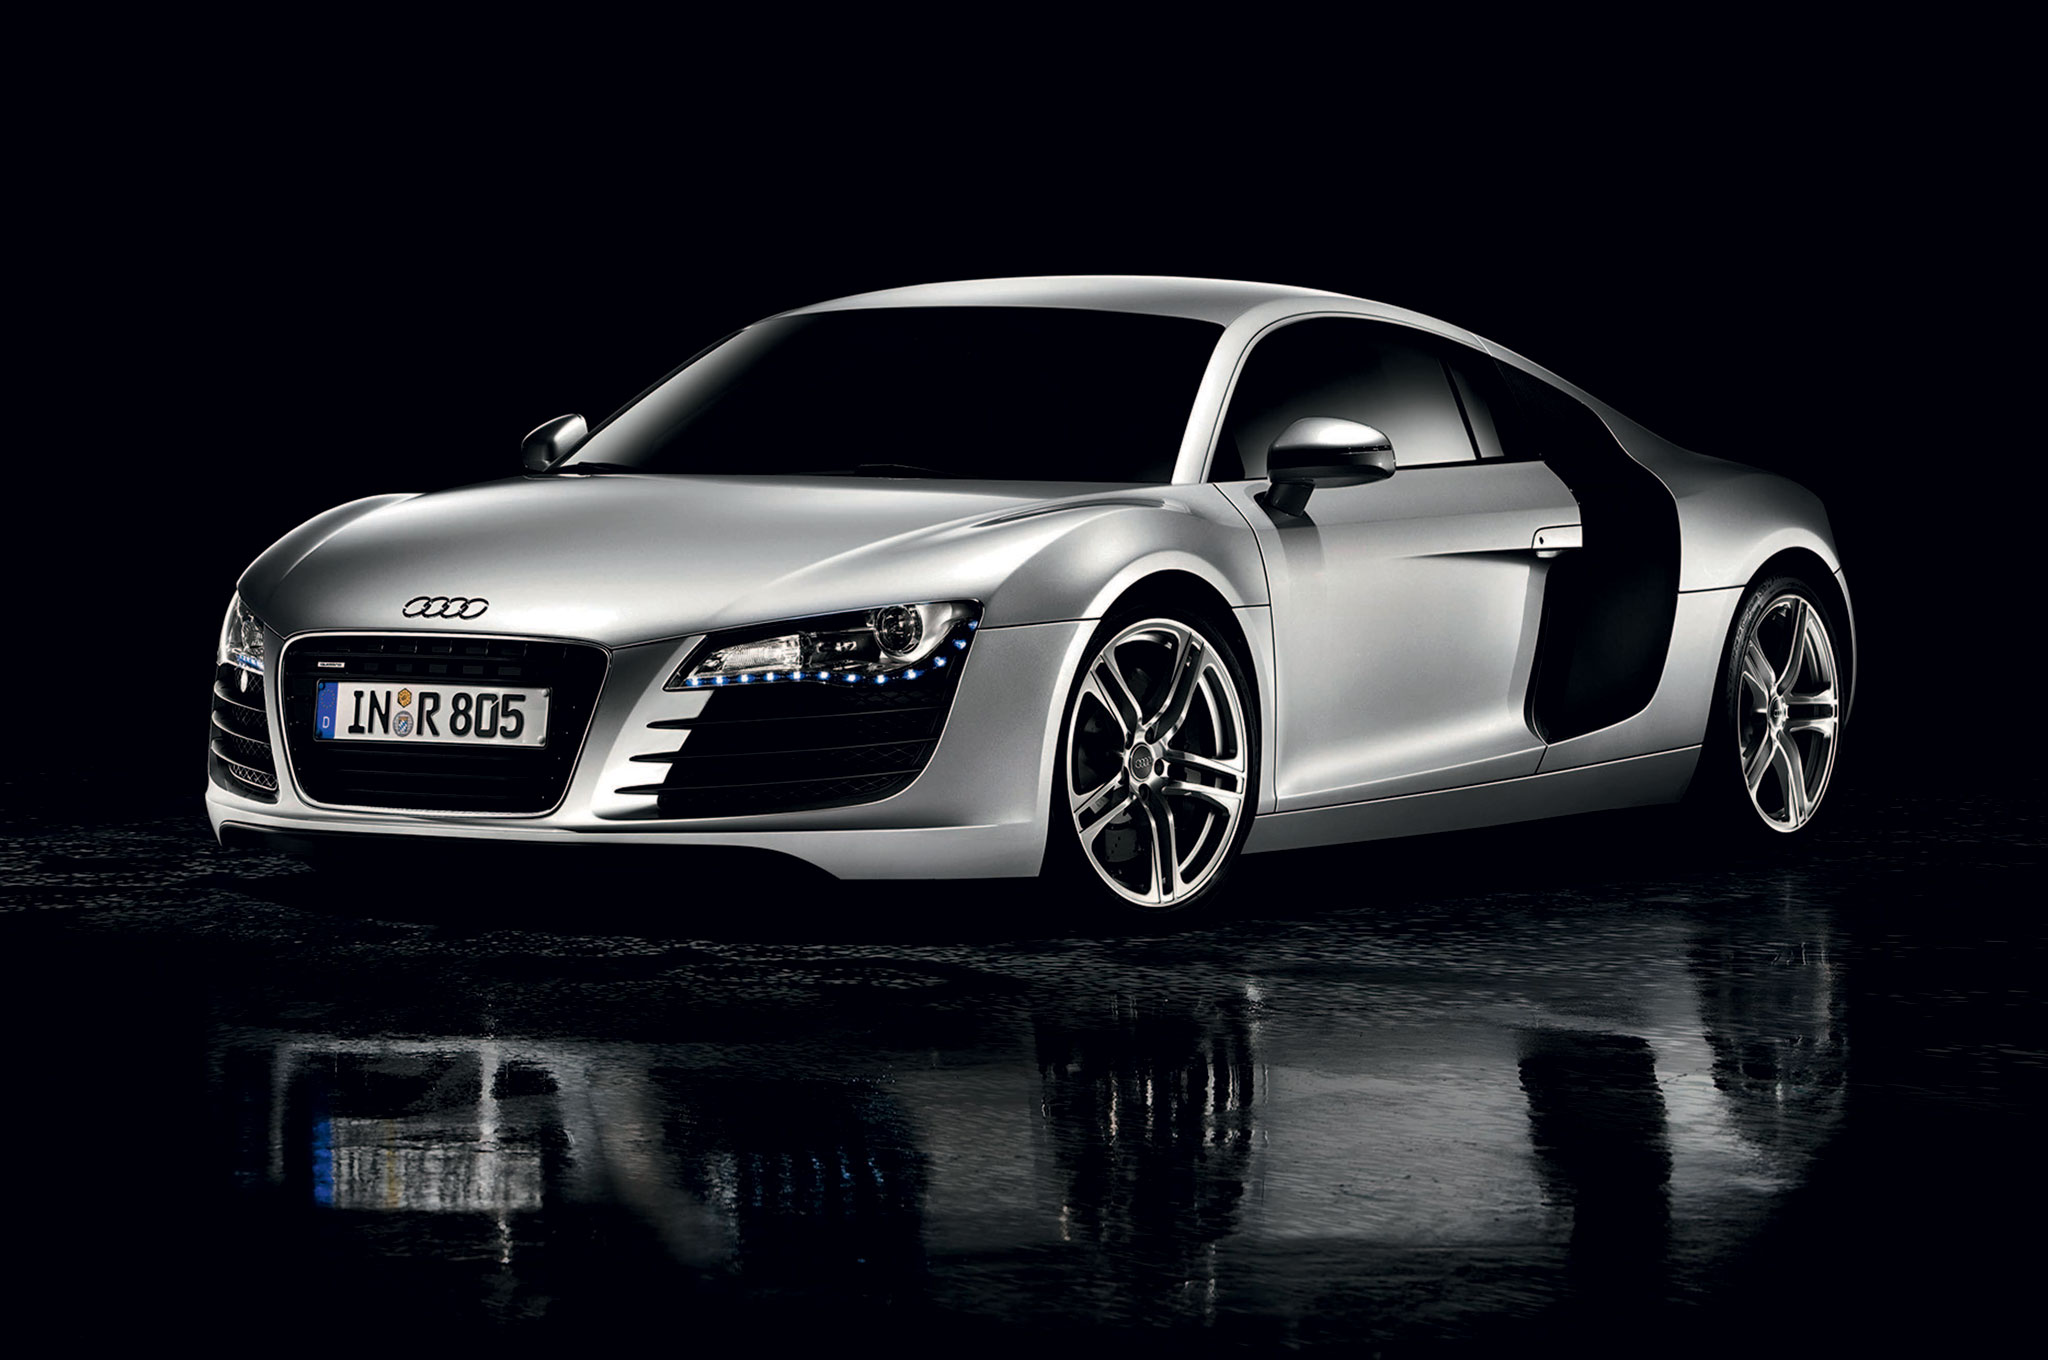 2008 Audi R8 Coupe Front Three Quarter Reflection